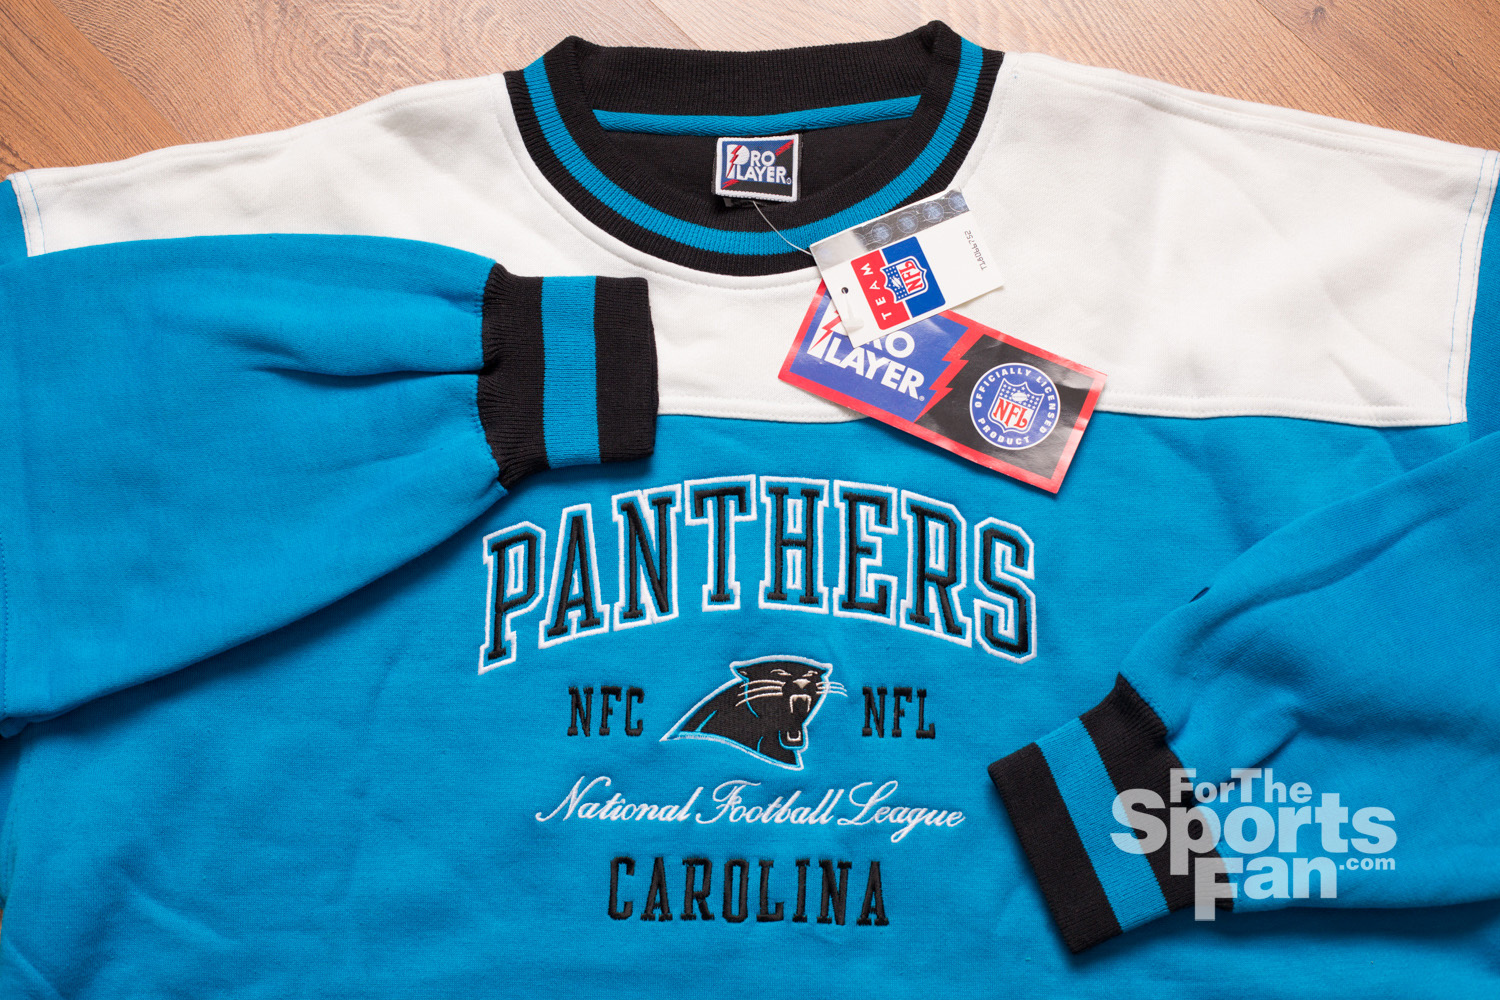 Carolina Panthers Sweatshirt, Vintage 1997, New with Tags